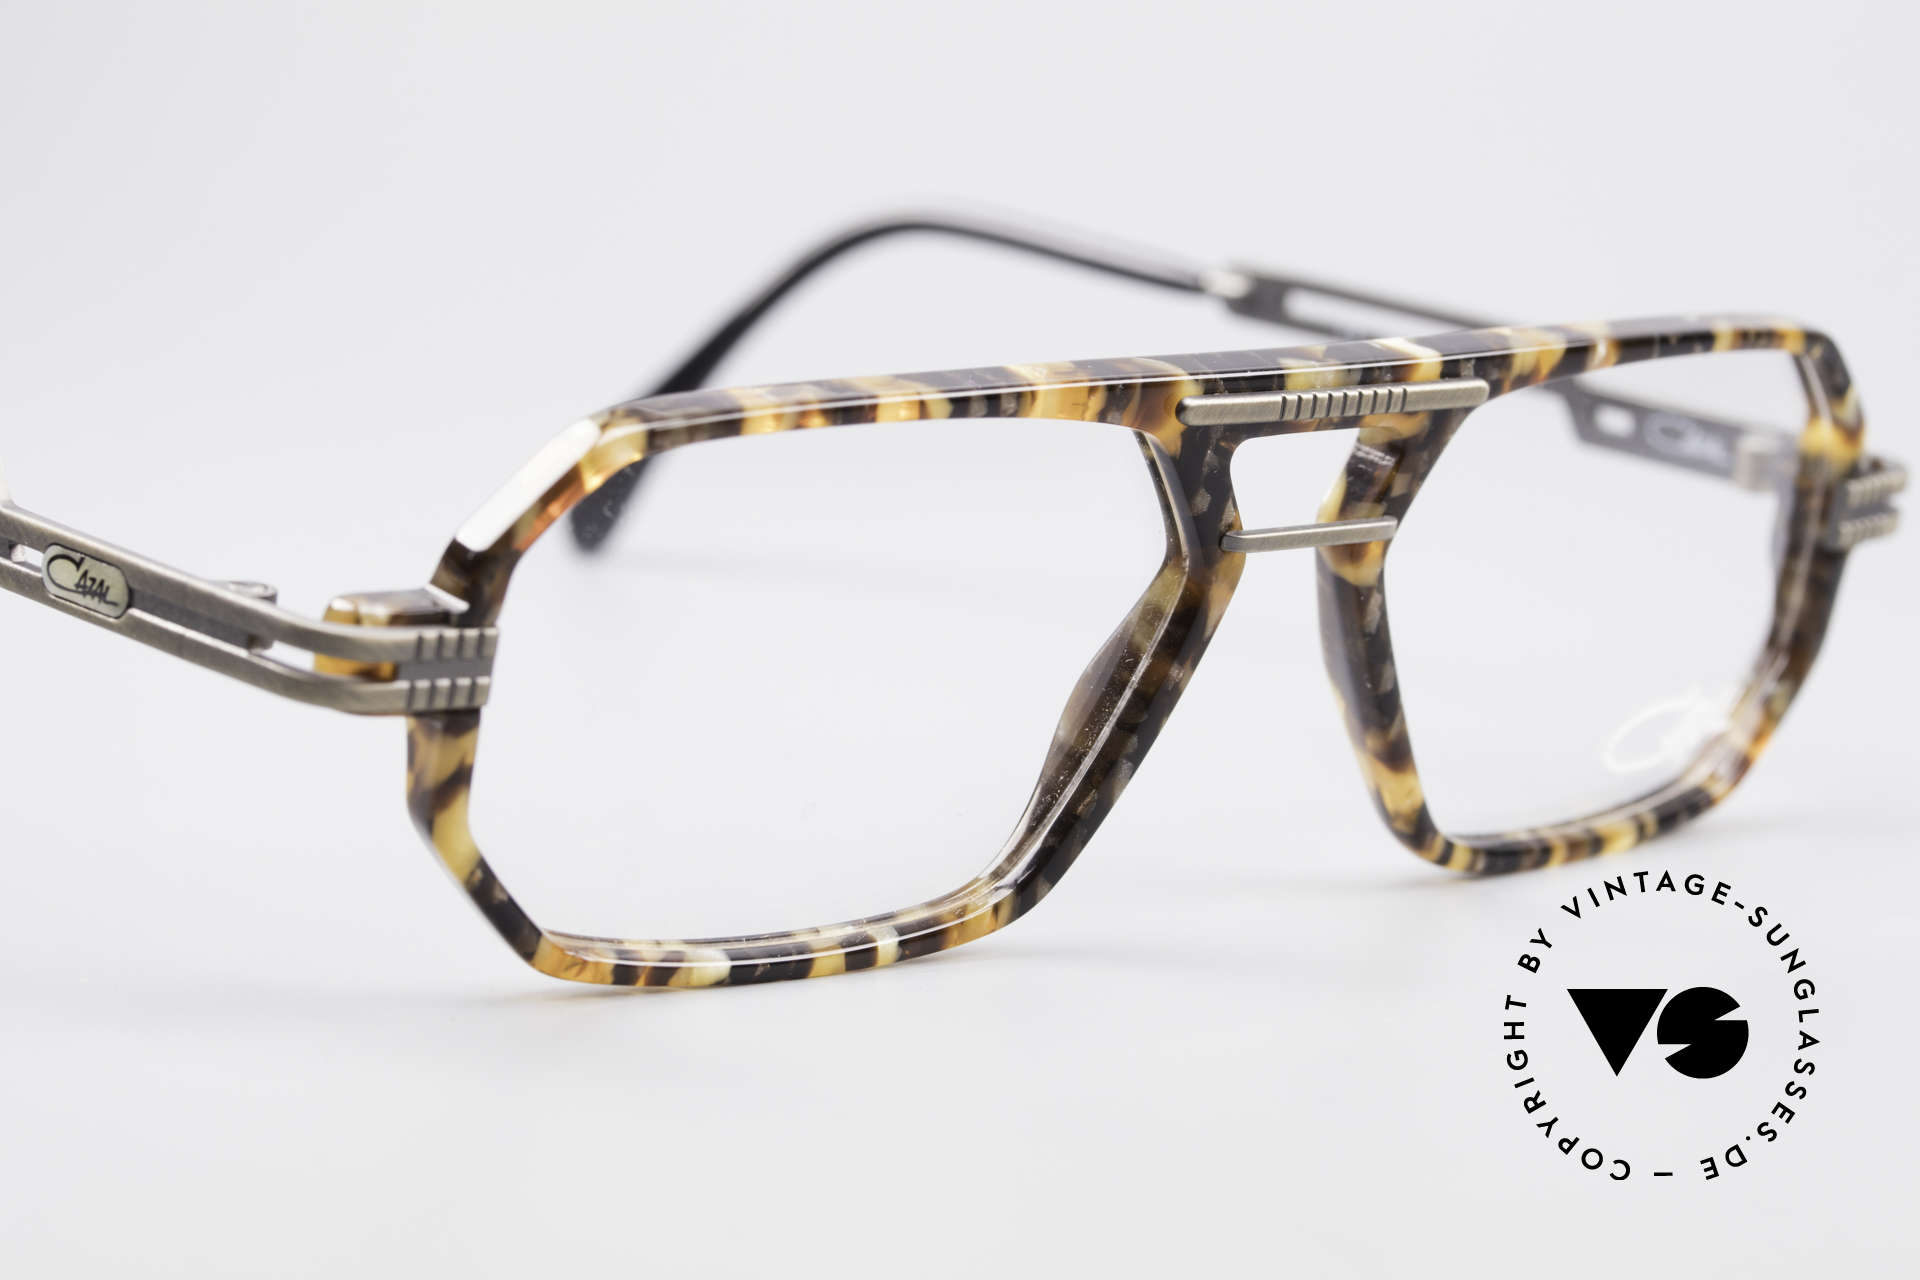 Cazal 651 Rare 90's Vintage Eyeglasses, NO RETRO eyeglass-frame, but a 20 years old original, Made for Men